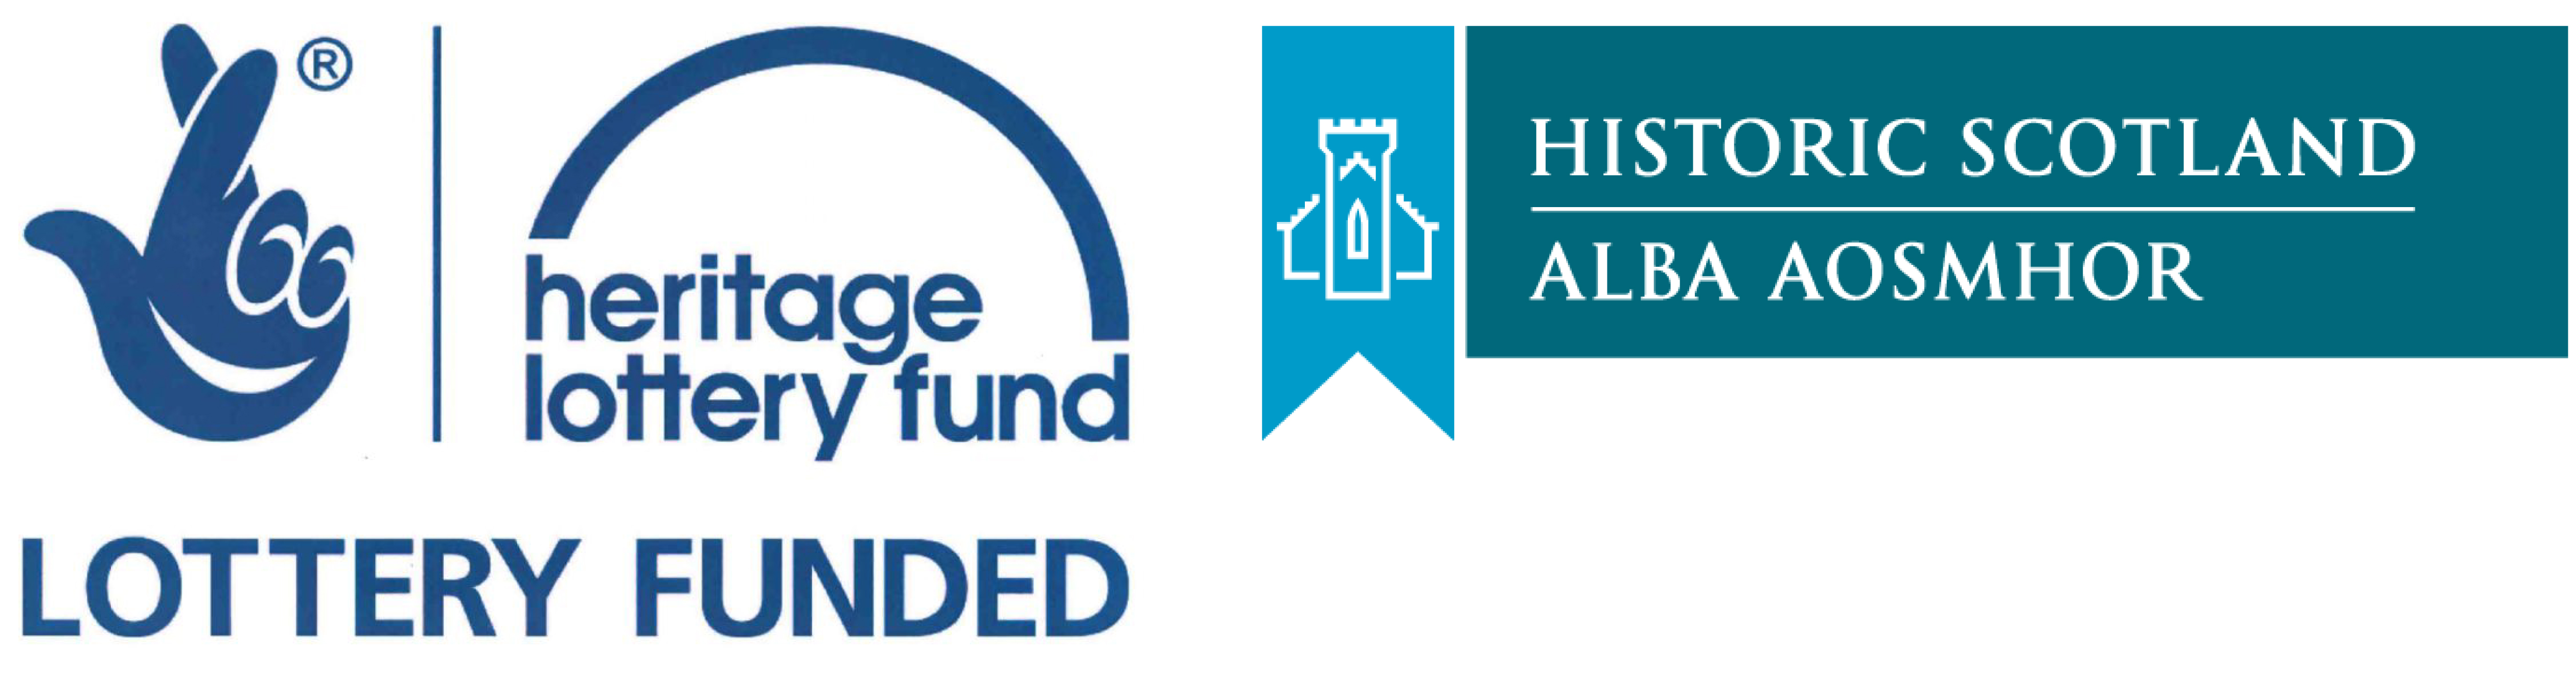 Virtual Histories Project - funded by Historic Scotland and Heritage Lottery Fund